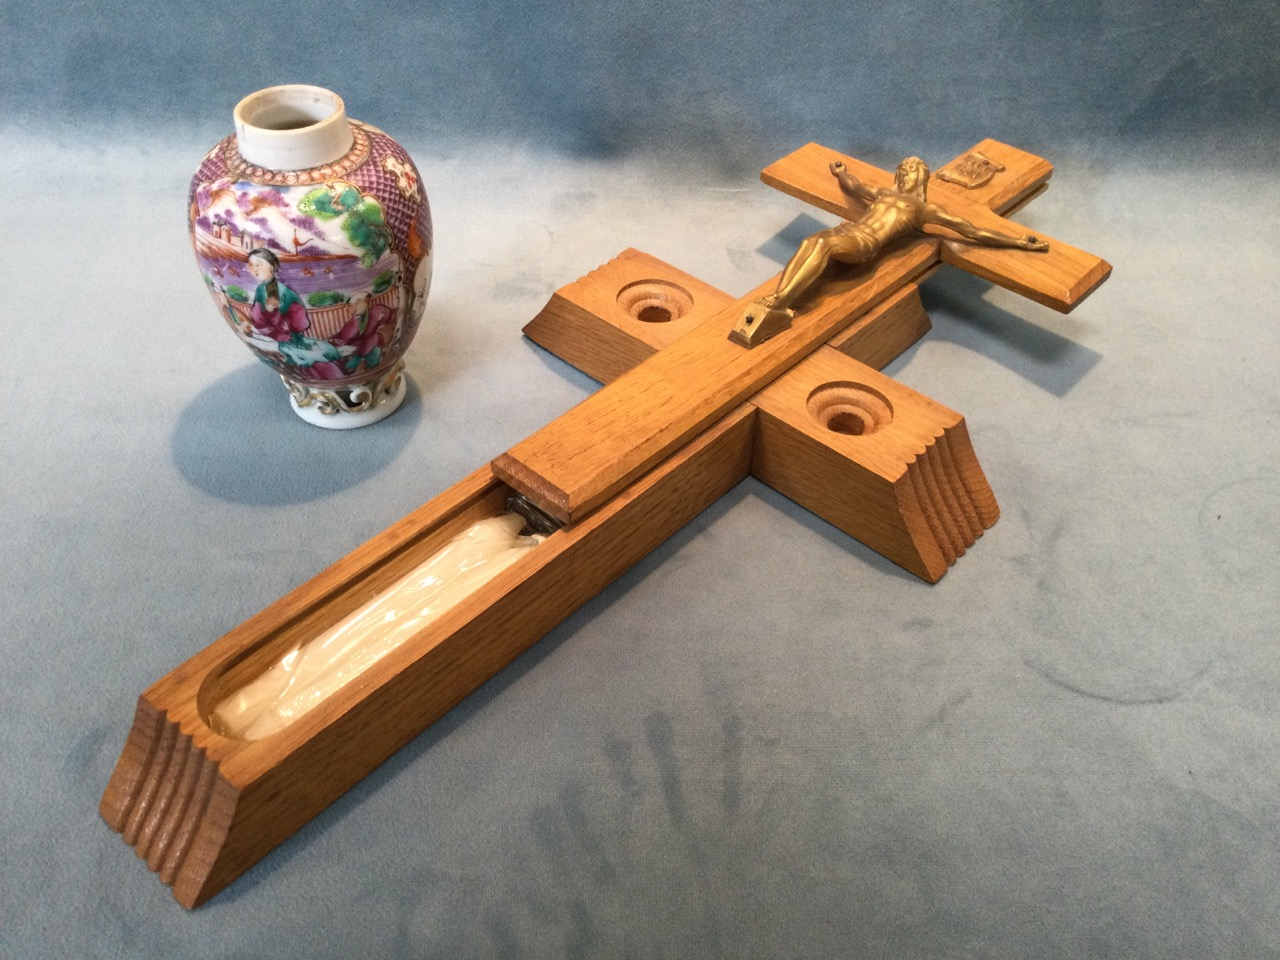 An oak absolution crucifix with sliding case revealing holy water bottle, and a pair of candles to